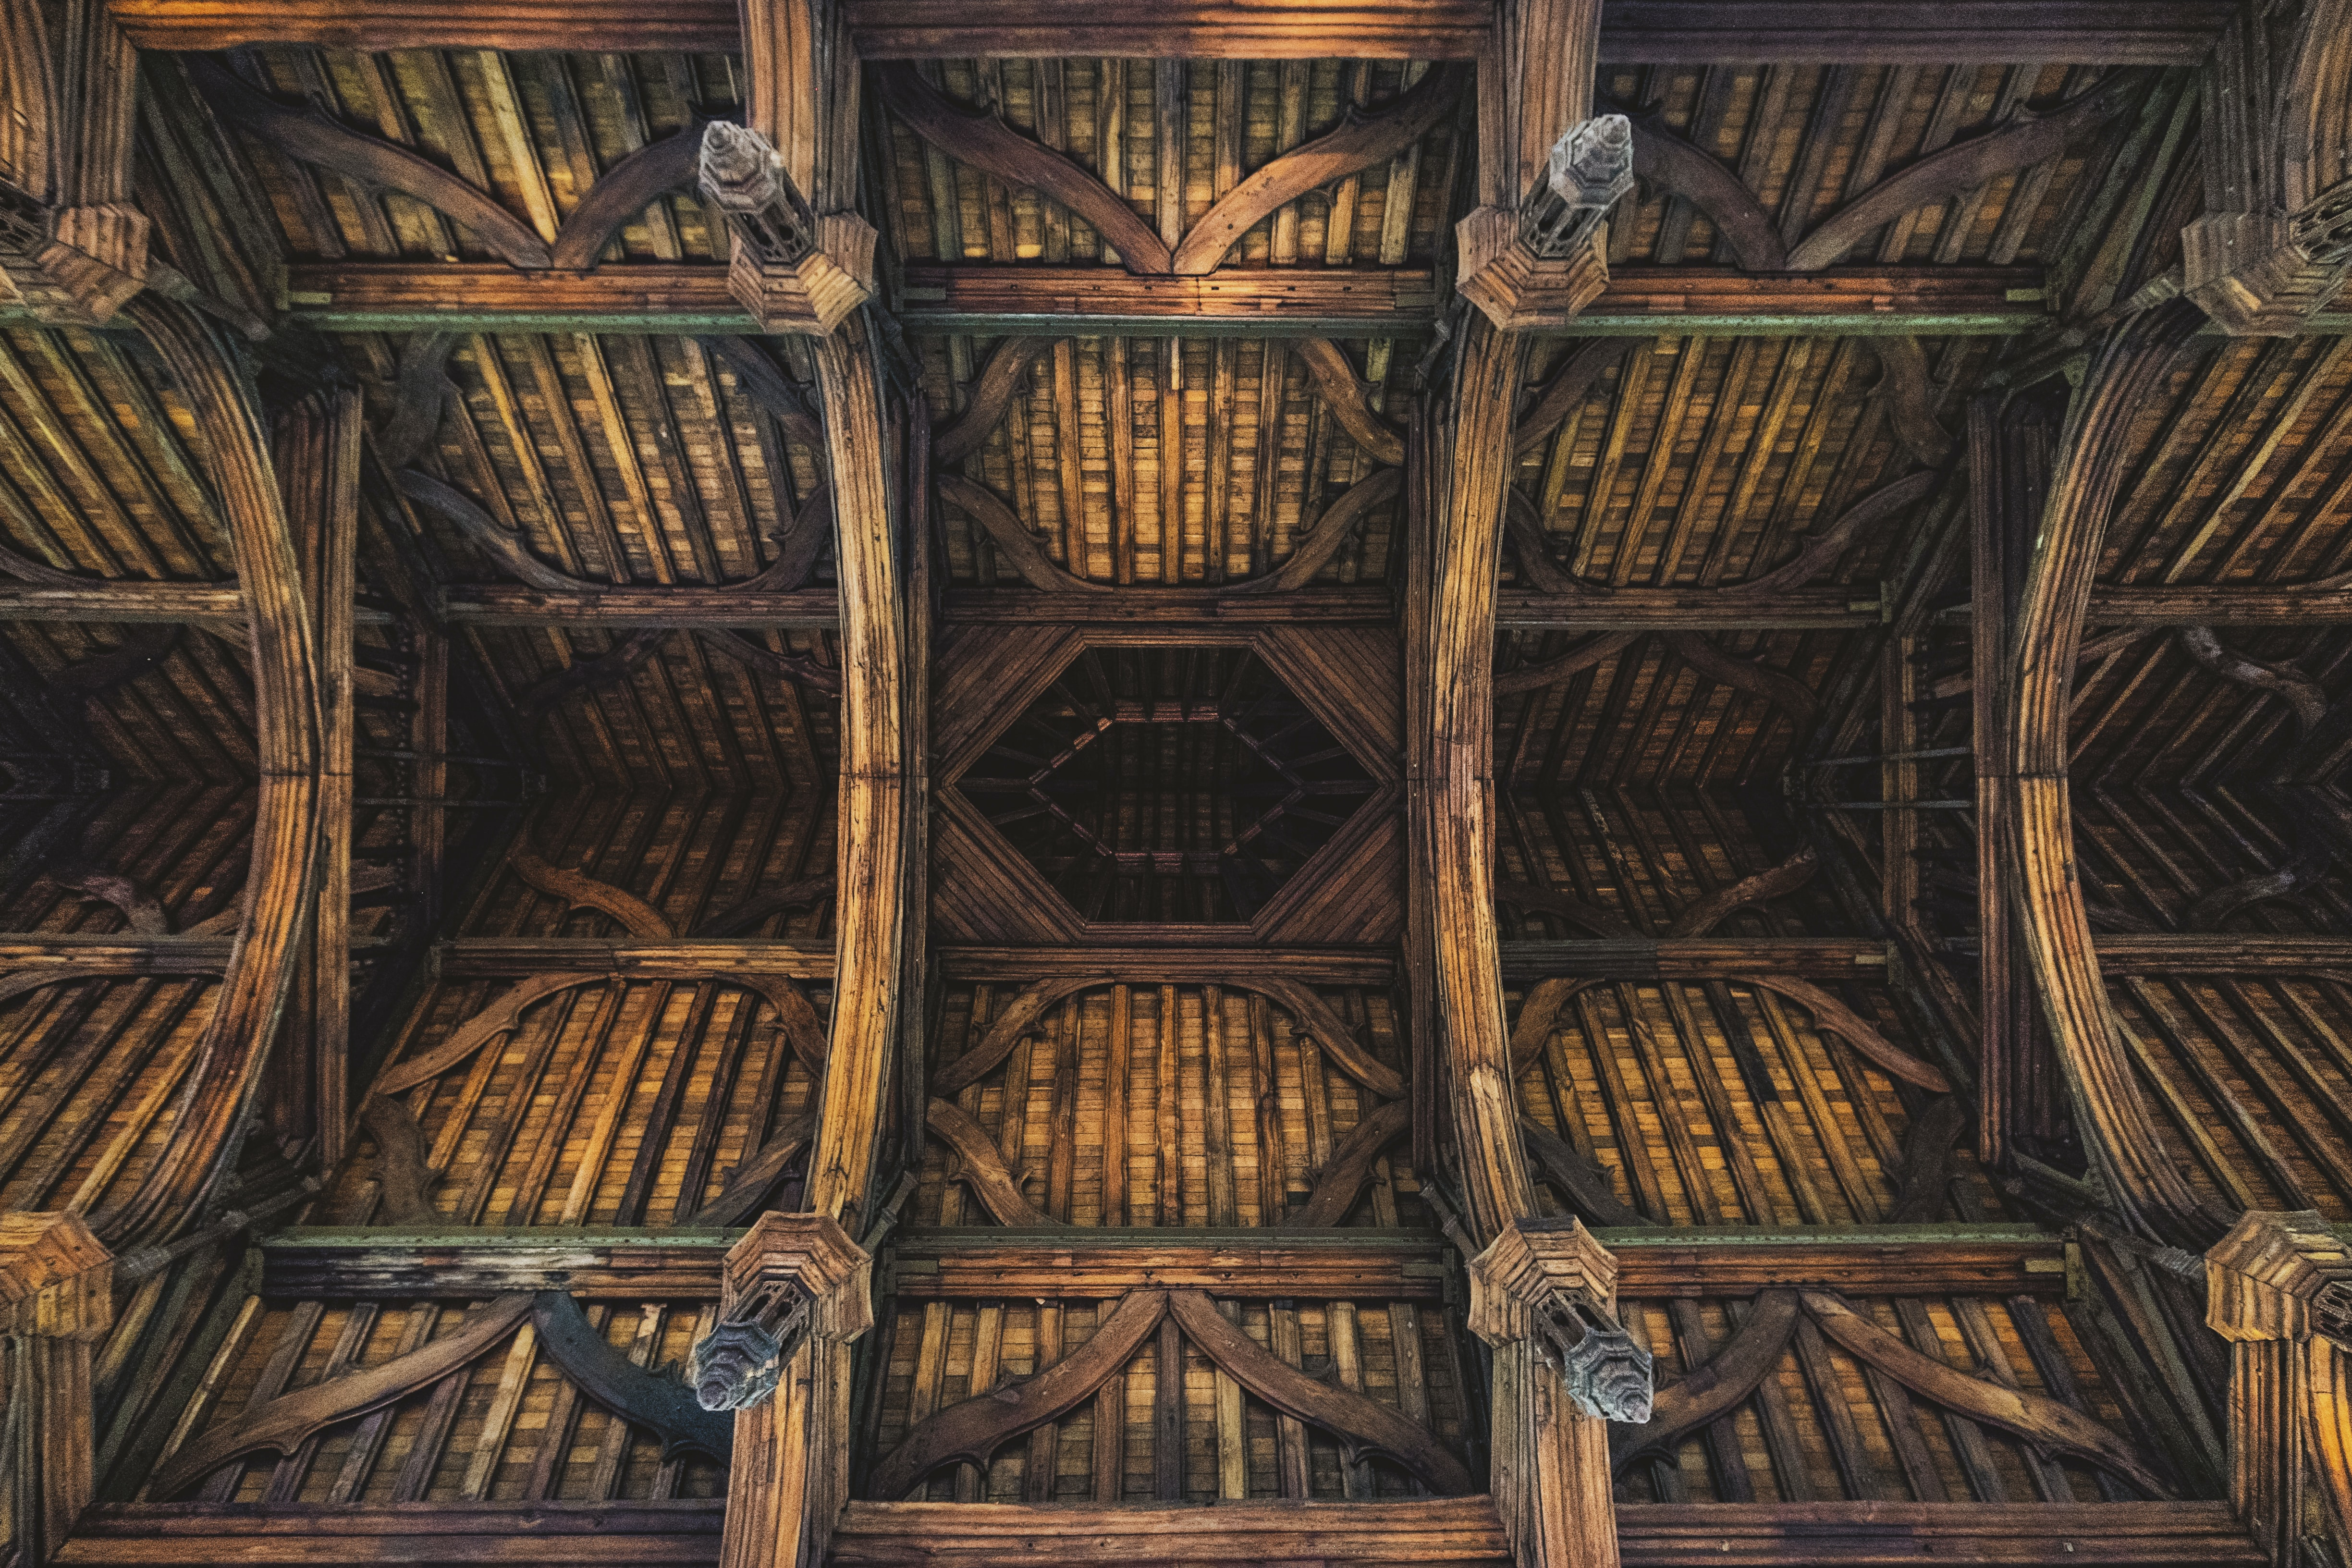 brown wooden building ceiling illustration